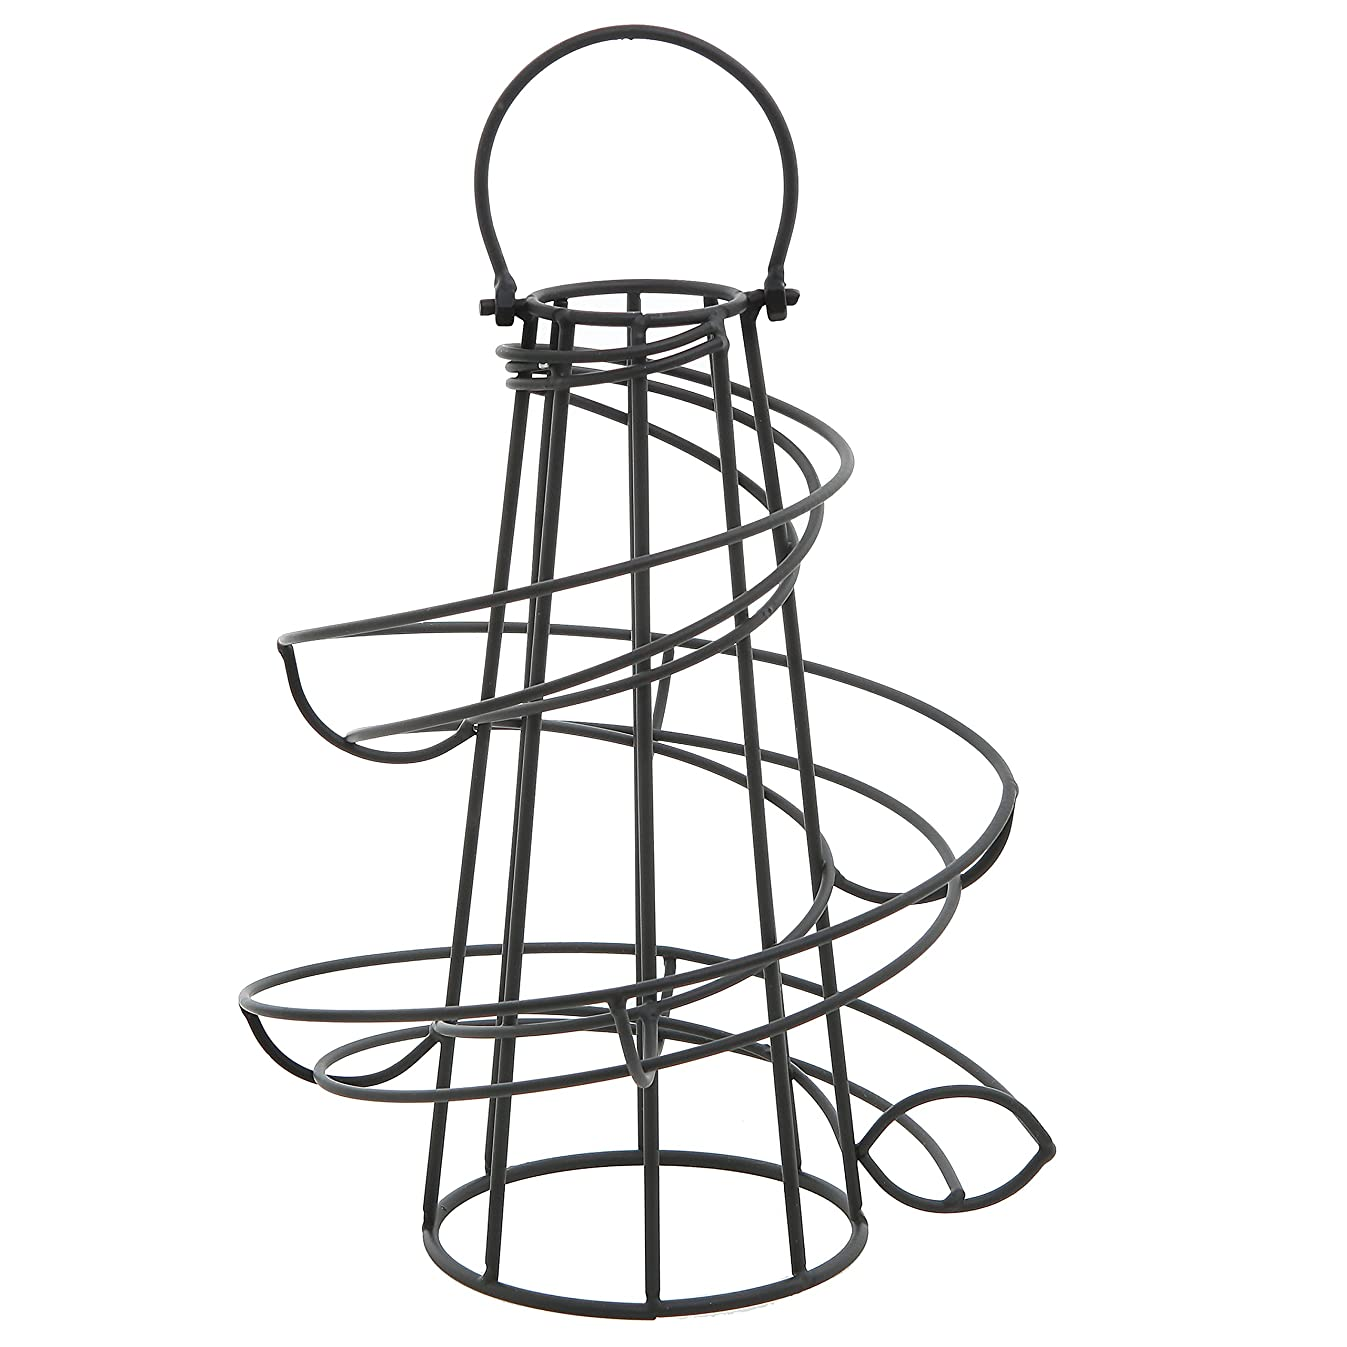 MyGift Deluxe Modern Spiraling Design Black Metal Freestanding Egg Skelter/Dispenser Rack